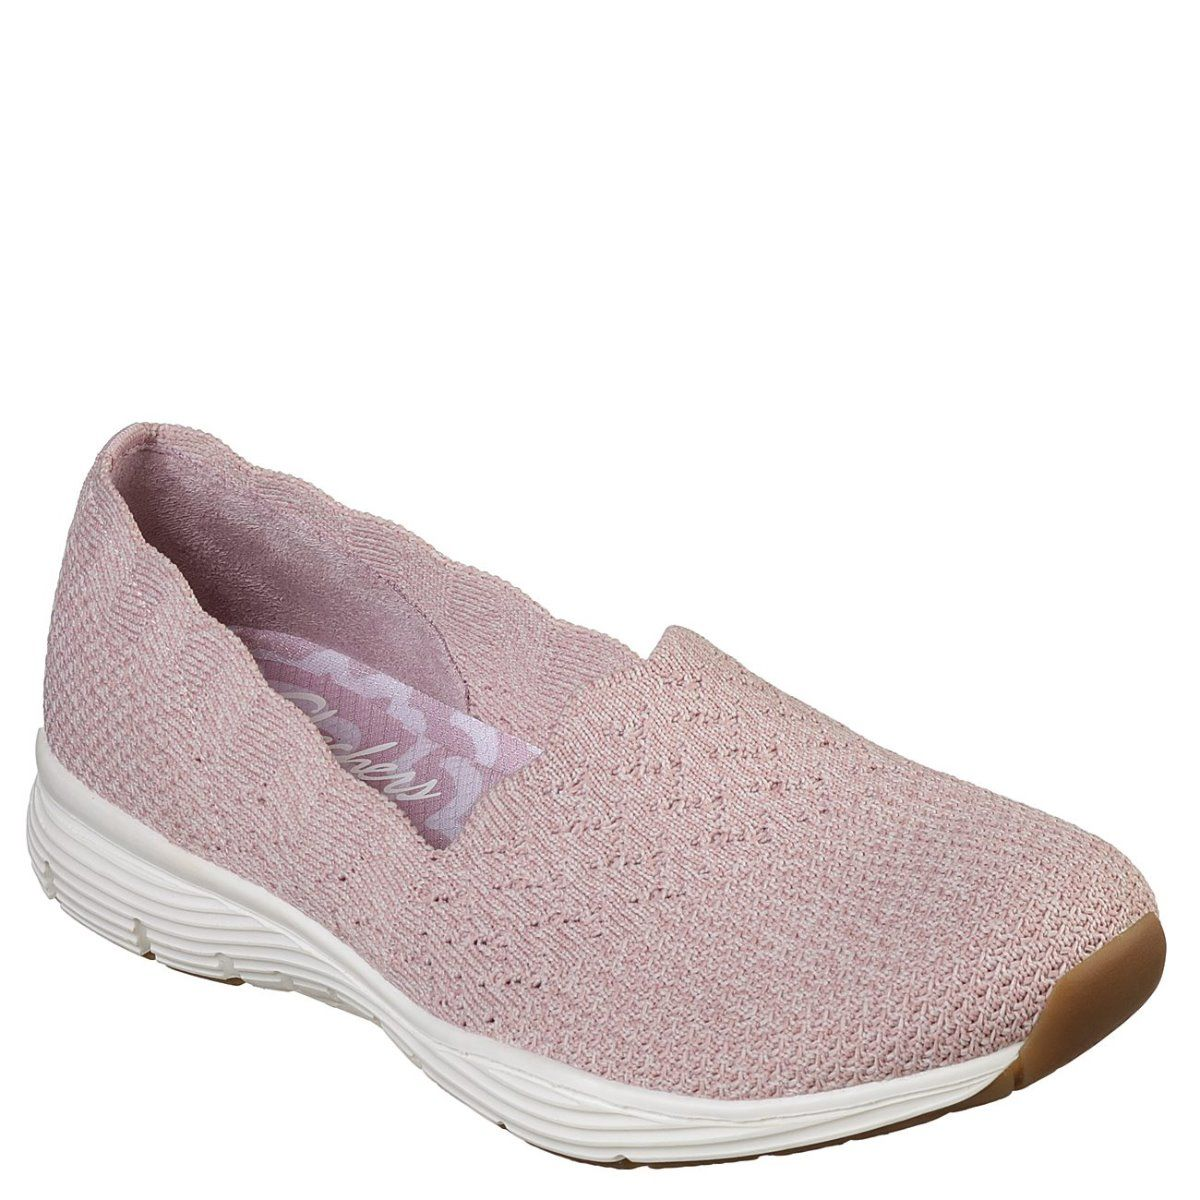 sale uk sold worldwide meet Skechers SEAGER STAT 49481ROS Rose